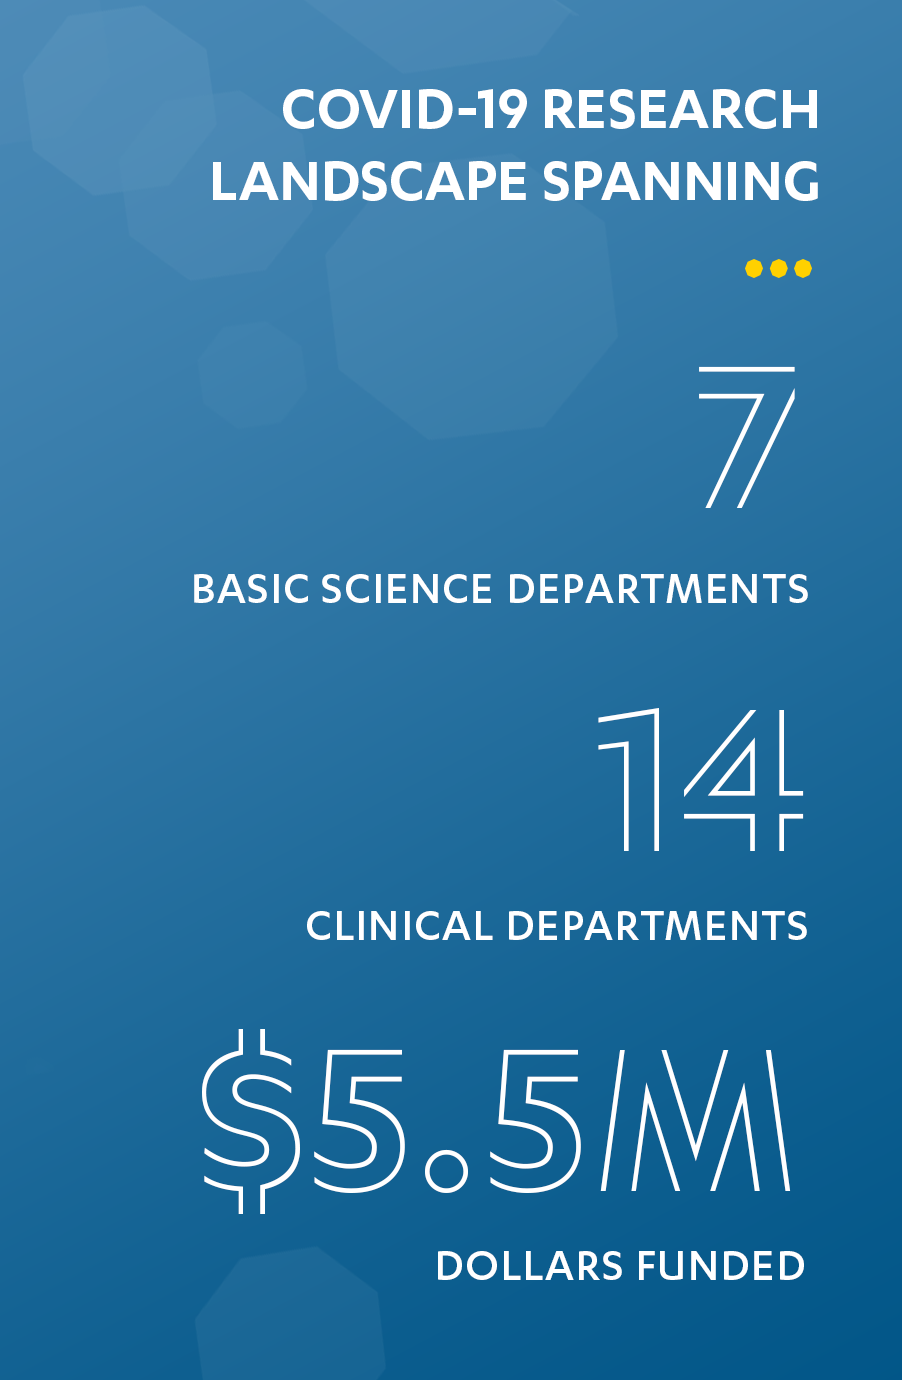 DGSOM COVID-19 Research to date involves 7 basic science departments, 14 clinical departments, and has funded $5.2 million dollars